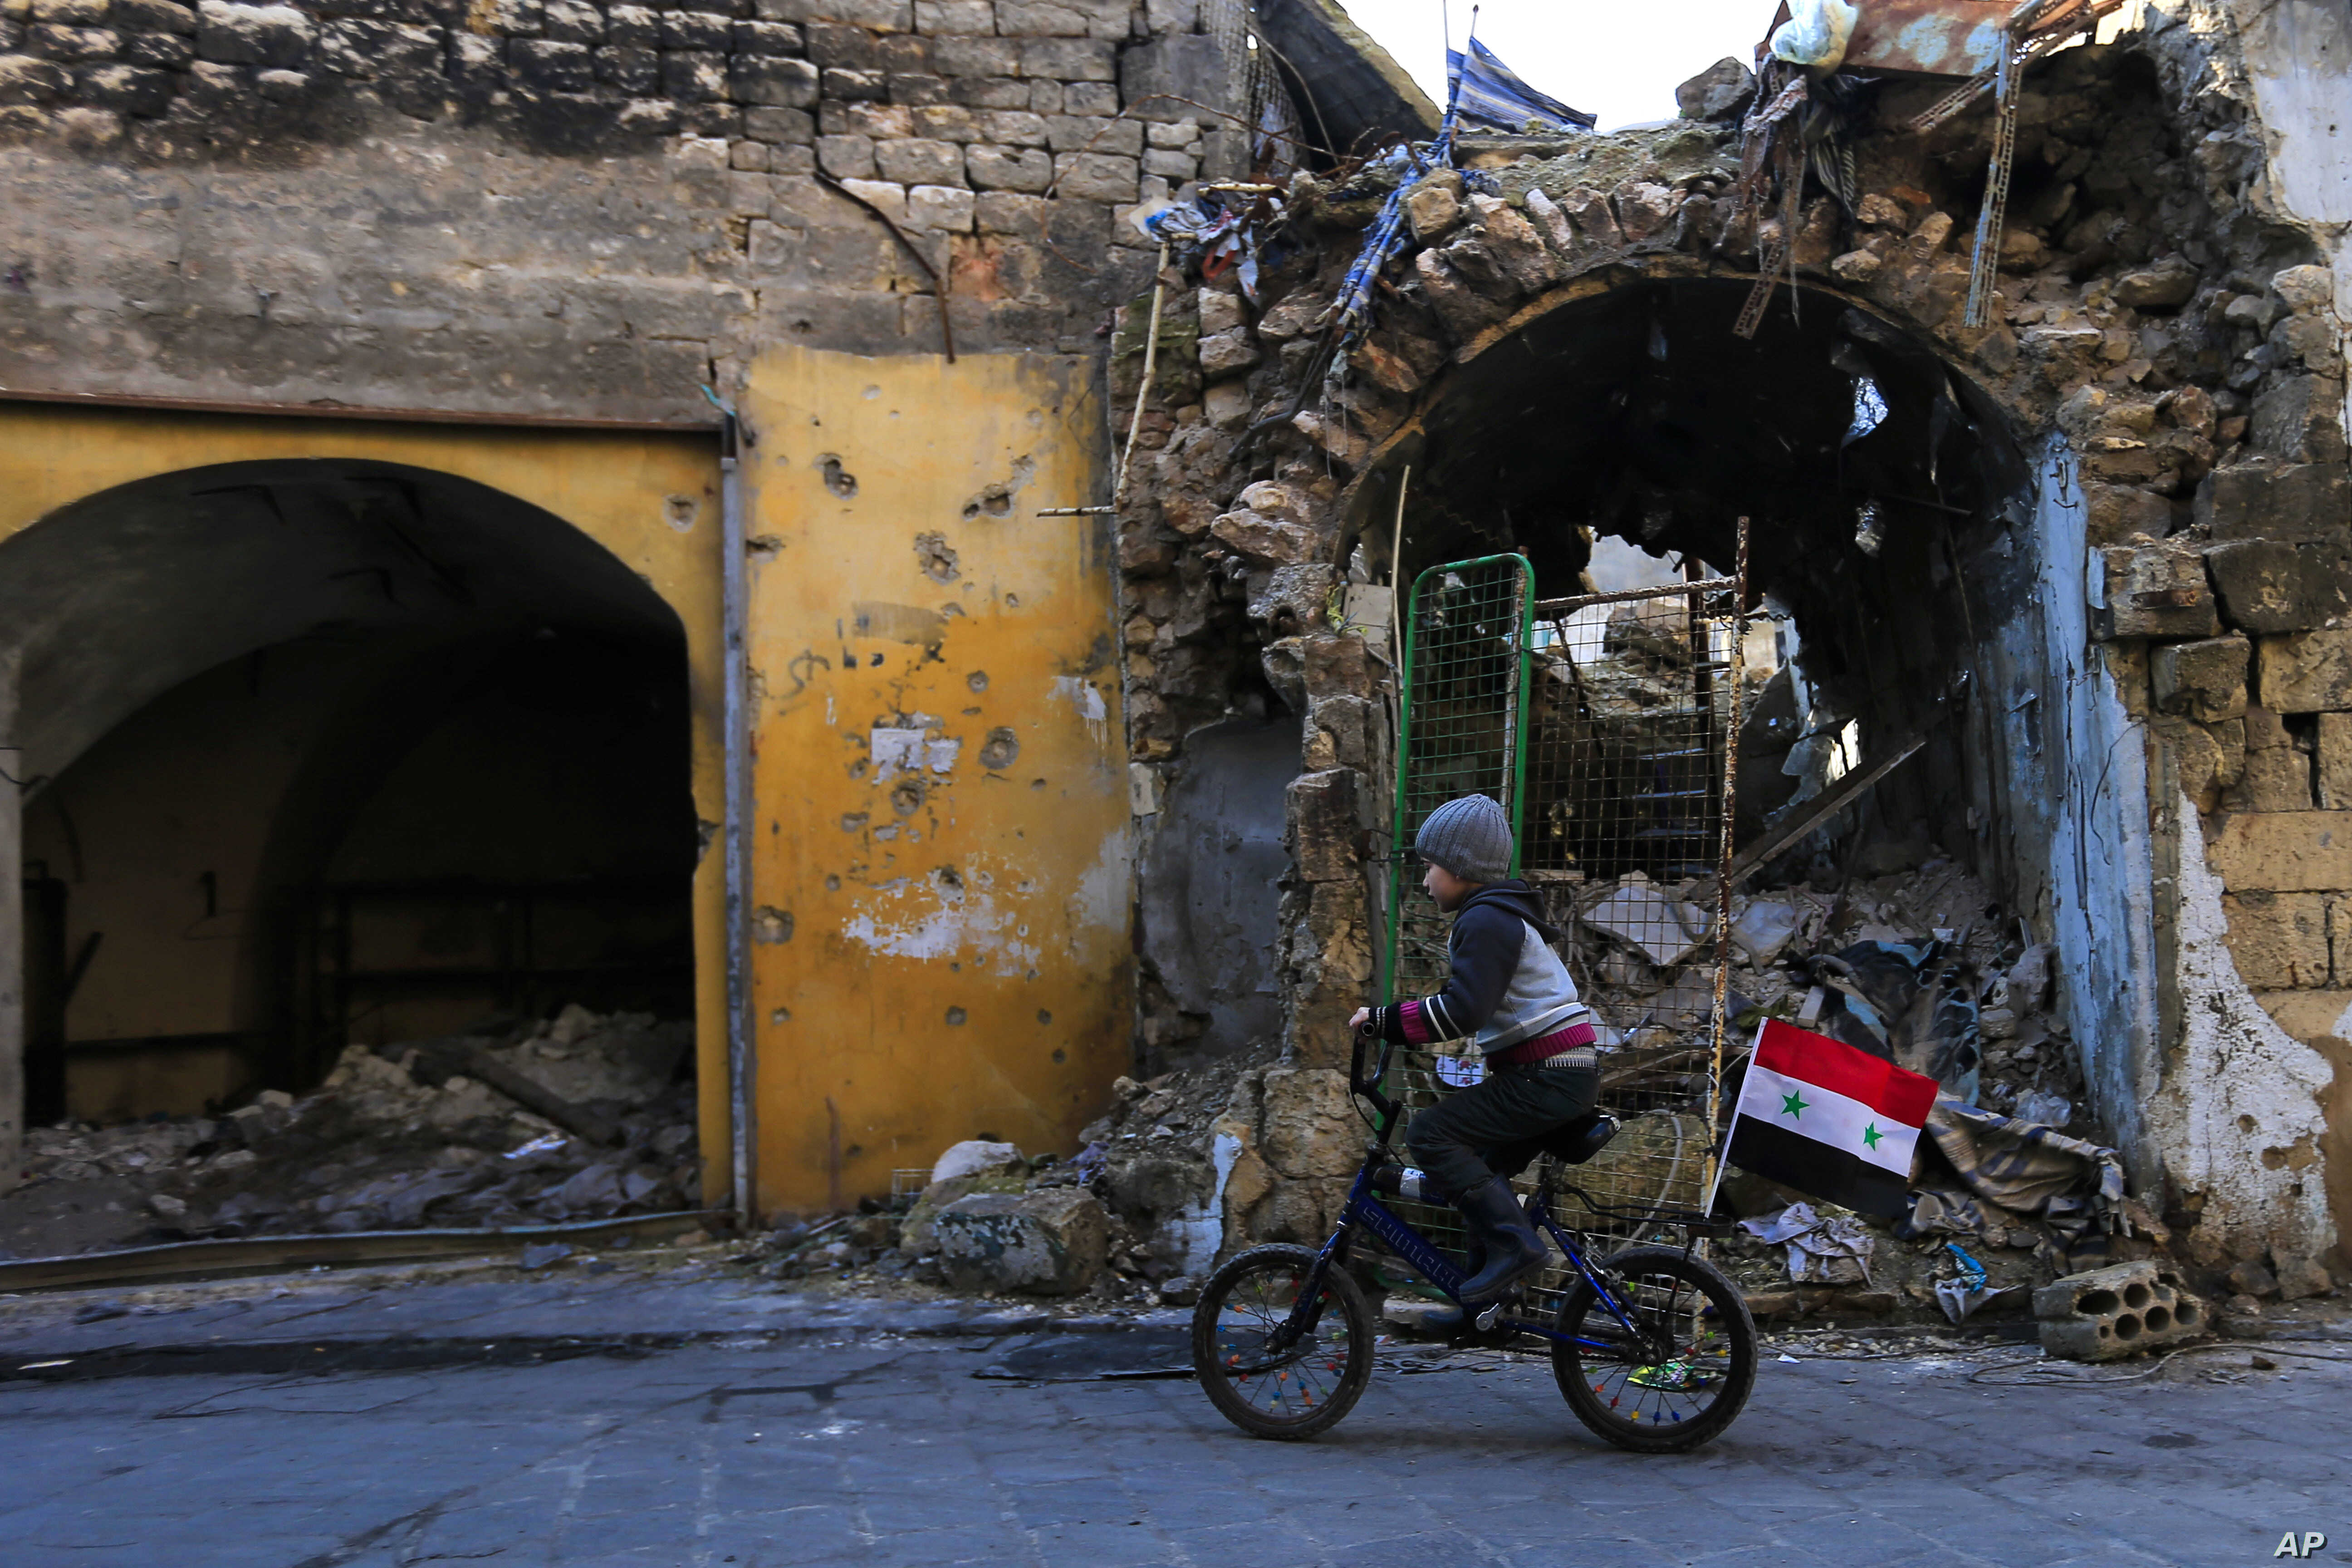 FILE - Syrian boy rides his bike past the destruction in the once rebel-held Jalloum neighborhood of eastern Aleppo, Syria.